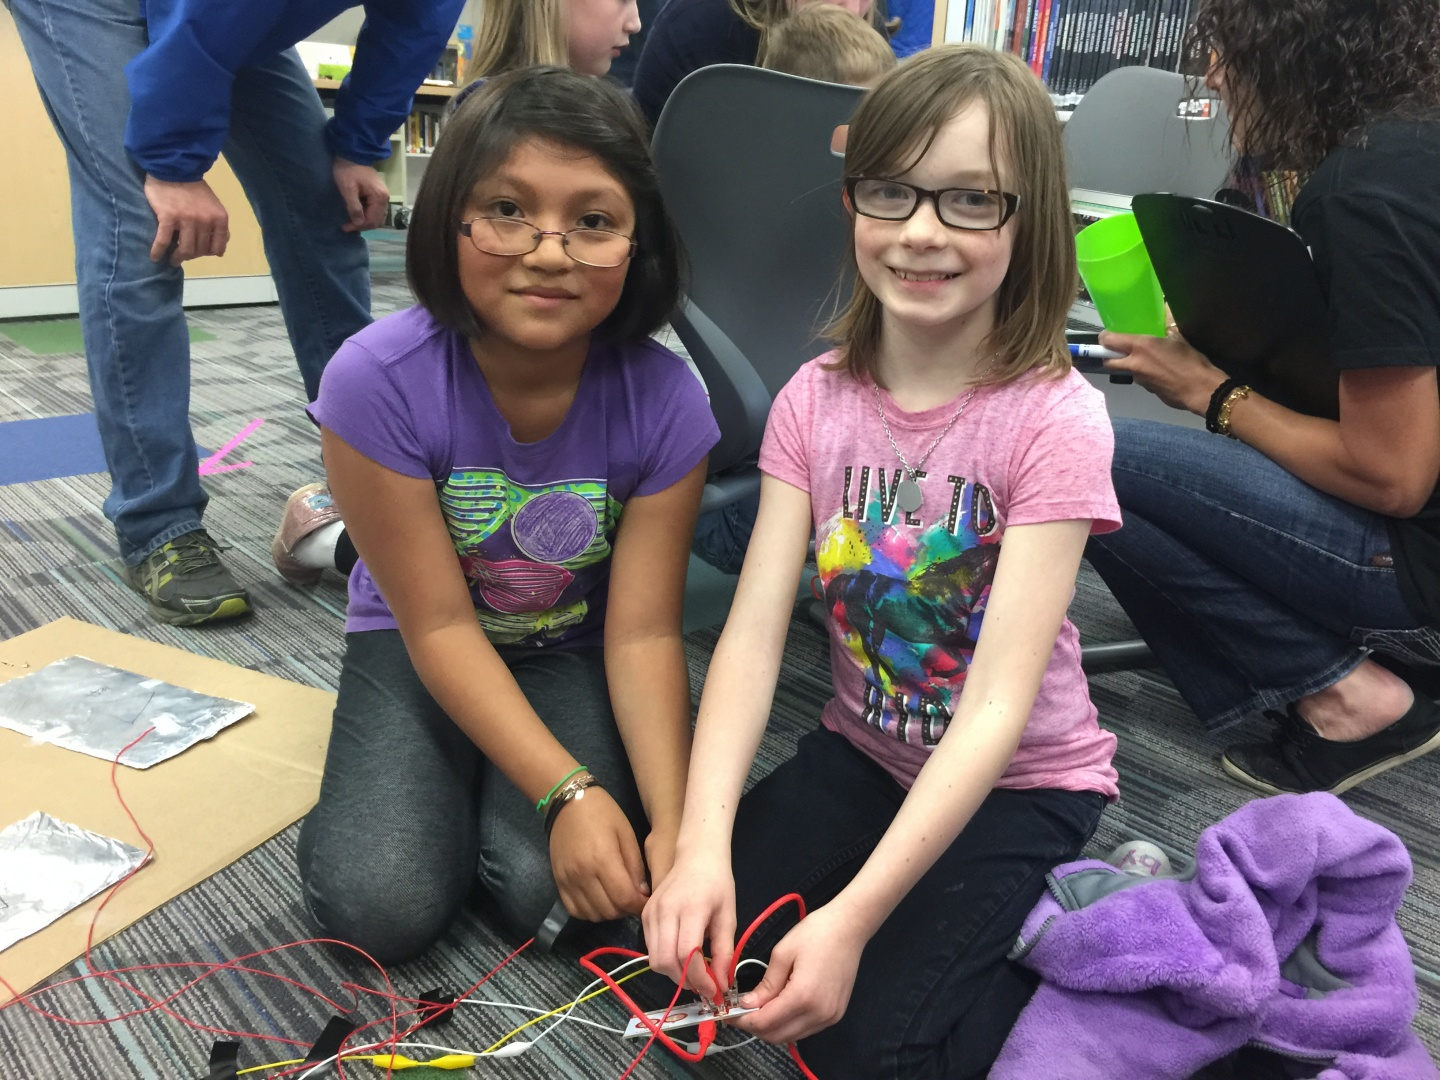 Edwards students learn to innovate using basic materials and sammy hernandez l and lizzy witcher adjust cables connecting circuits for their foot sciox Gallery